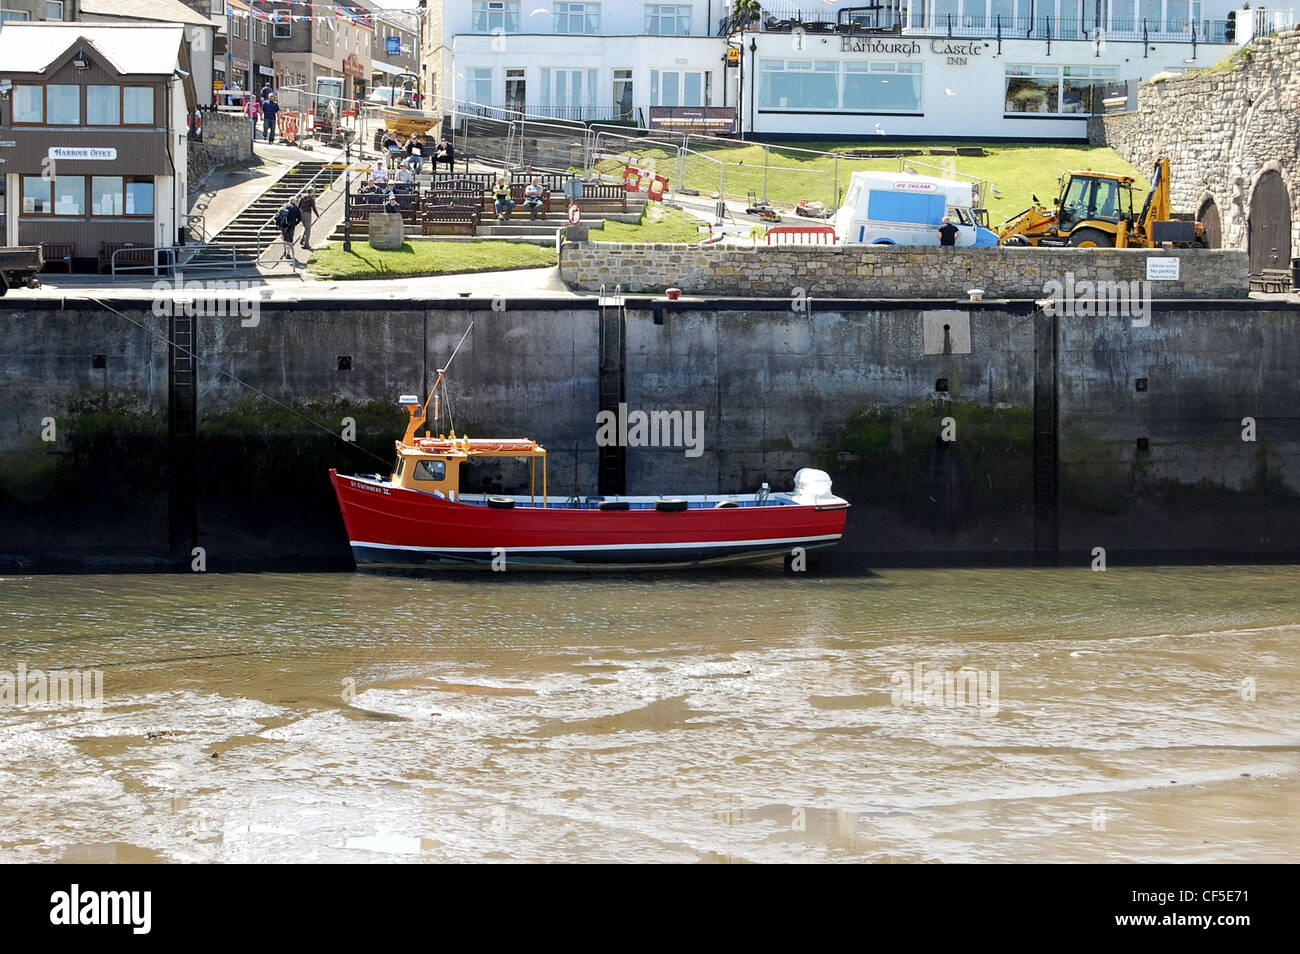 Seahouse harbour at low tide with boat resting on the muddy seabed with harbour master's office and seated people - Stock Image